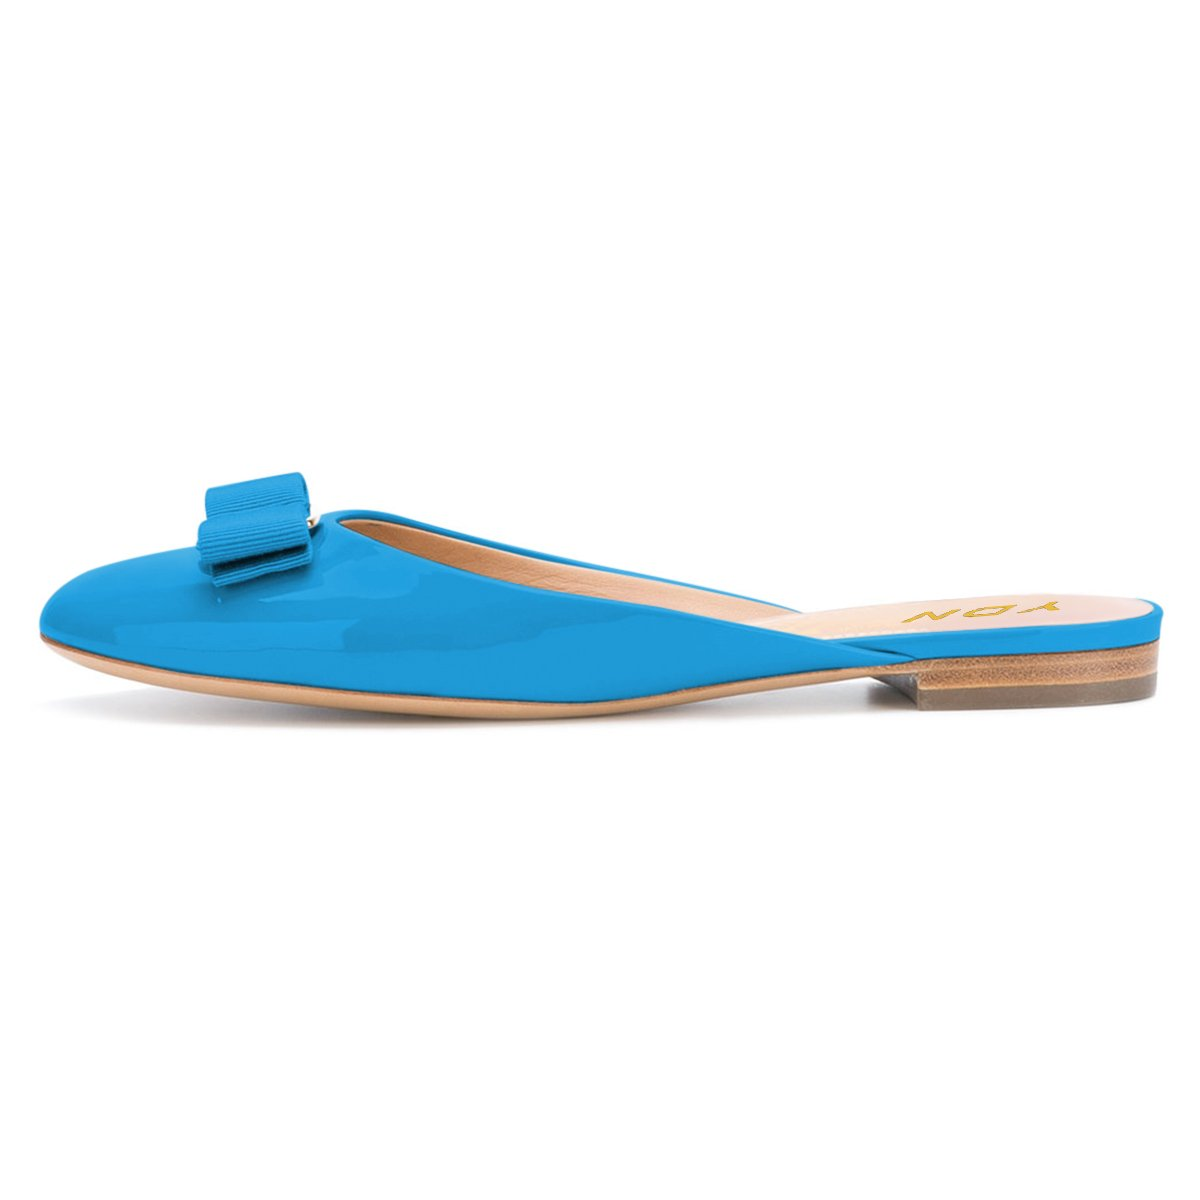 YDN Women Round Toe Low Heel Flats Slip on Bowknot Slippers Summer Slide Clog Shoes Blue 11 by YDN (Image #2)